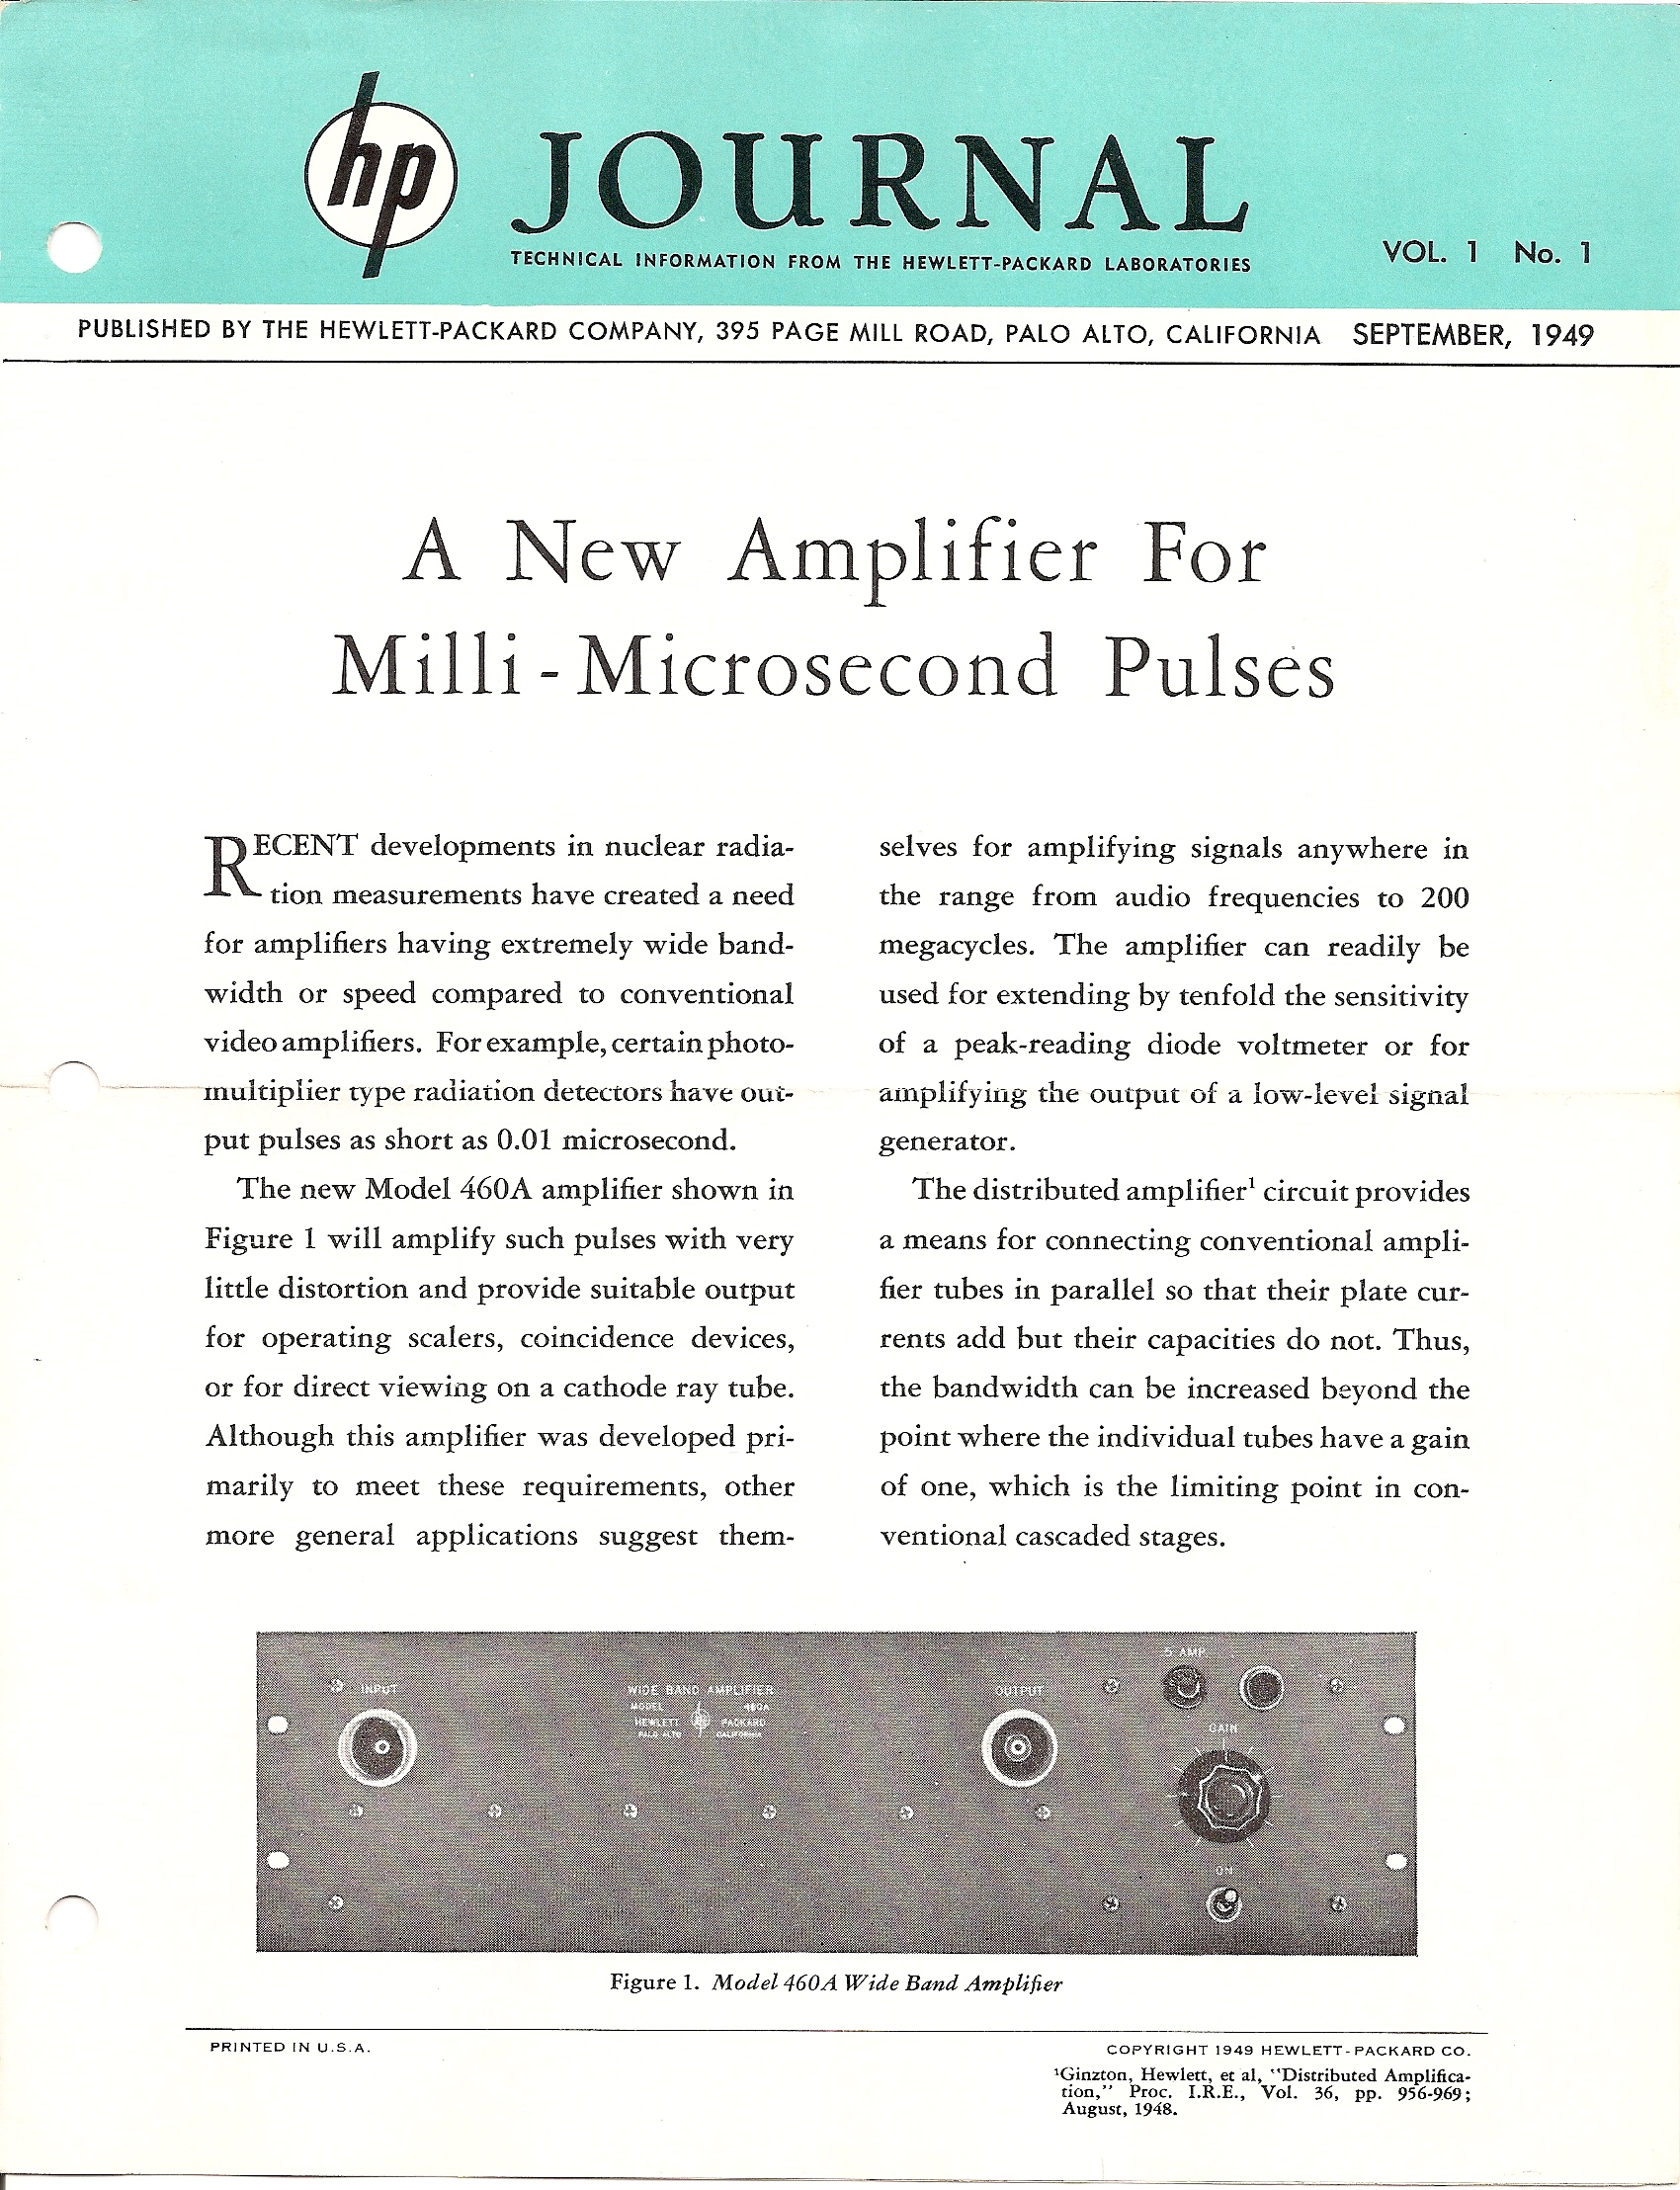 HP Journal Index | Agilent History Center – Archives